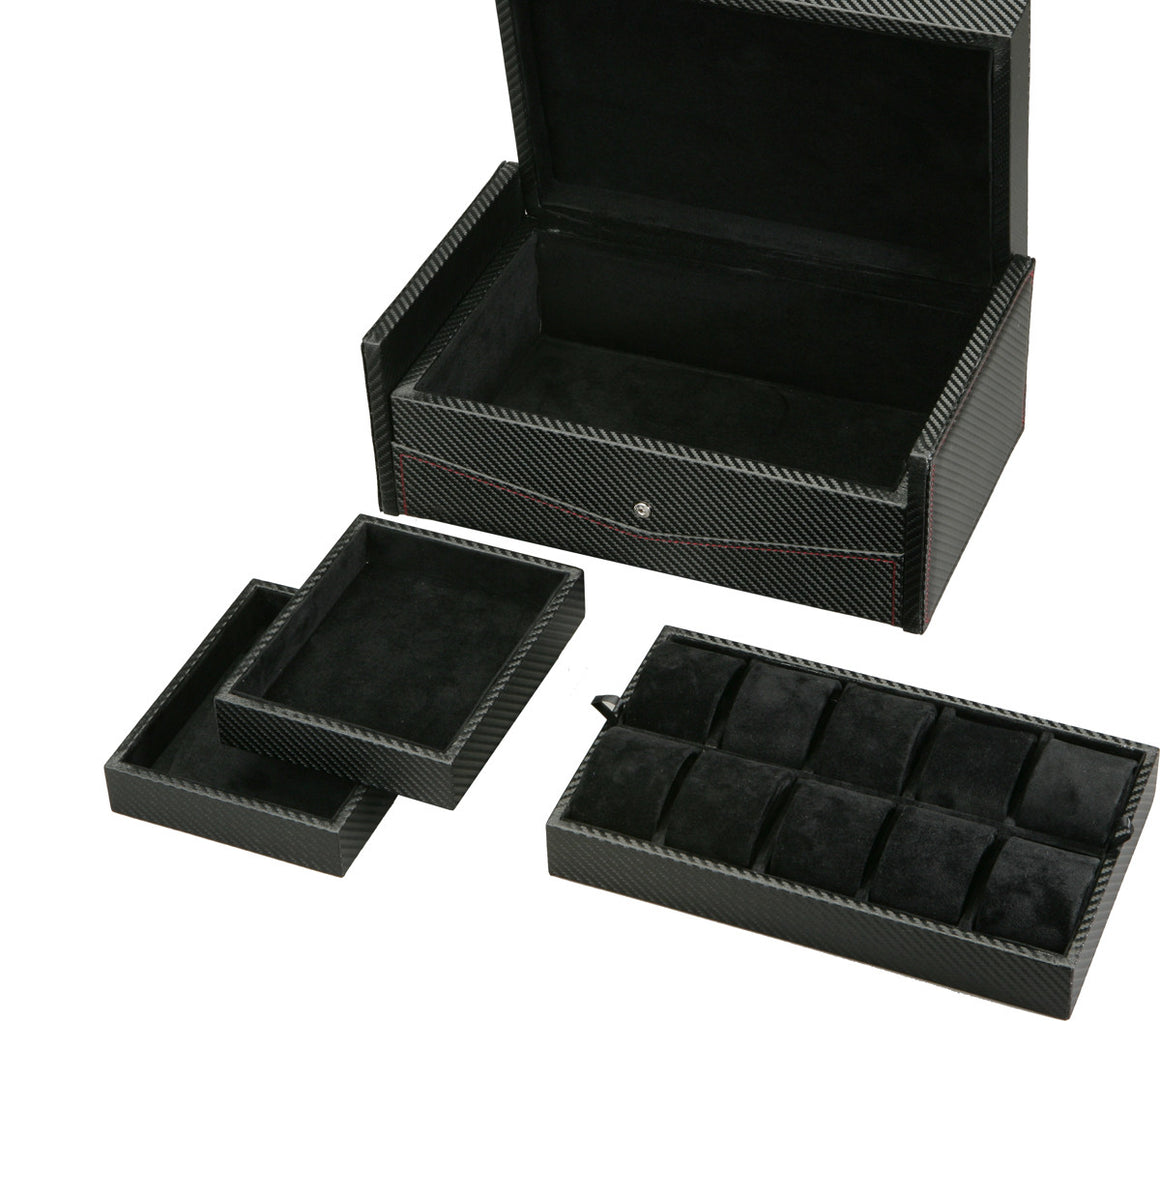 (10) Diplomat Carbon Fiber Watch Box with Extra Storage Tray - Watch Box Co. - 3